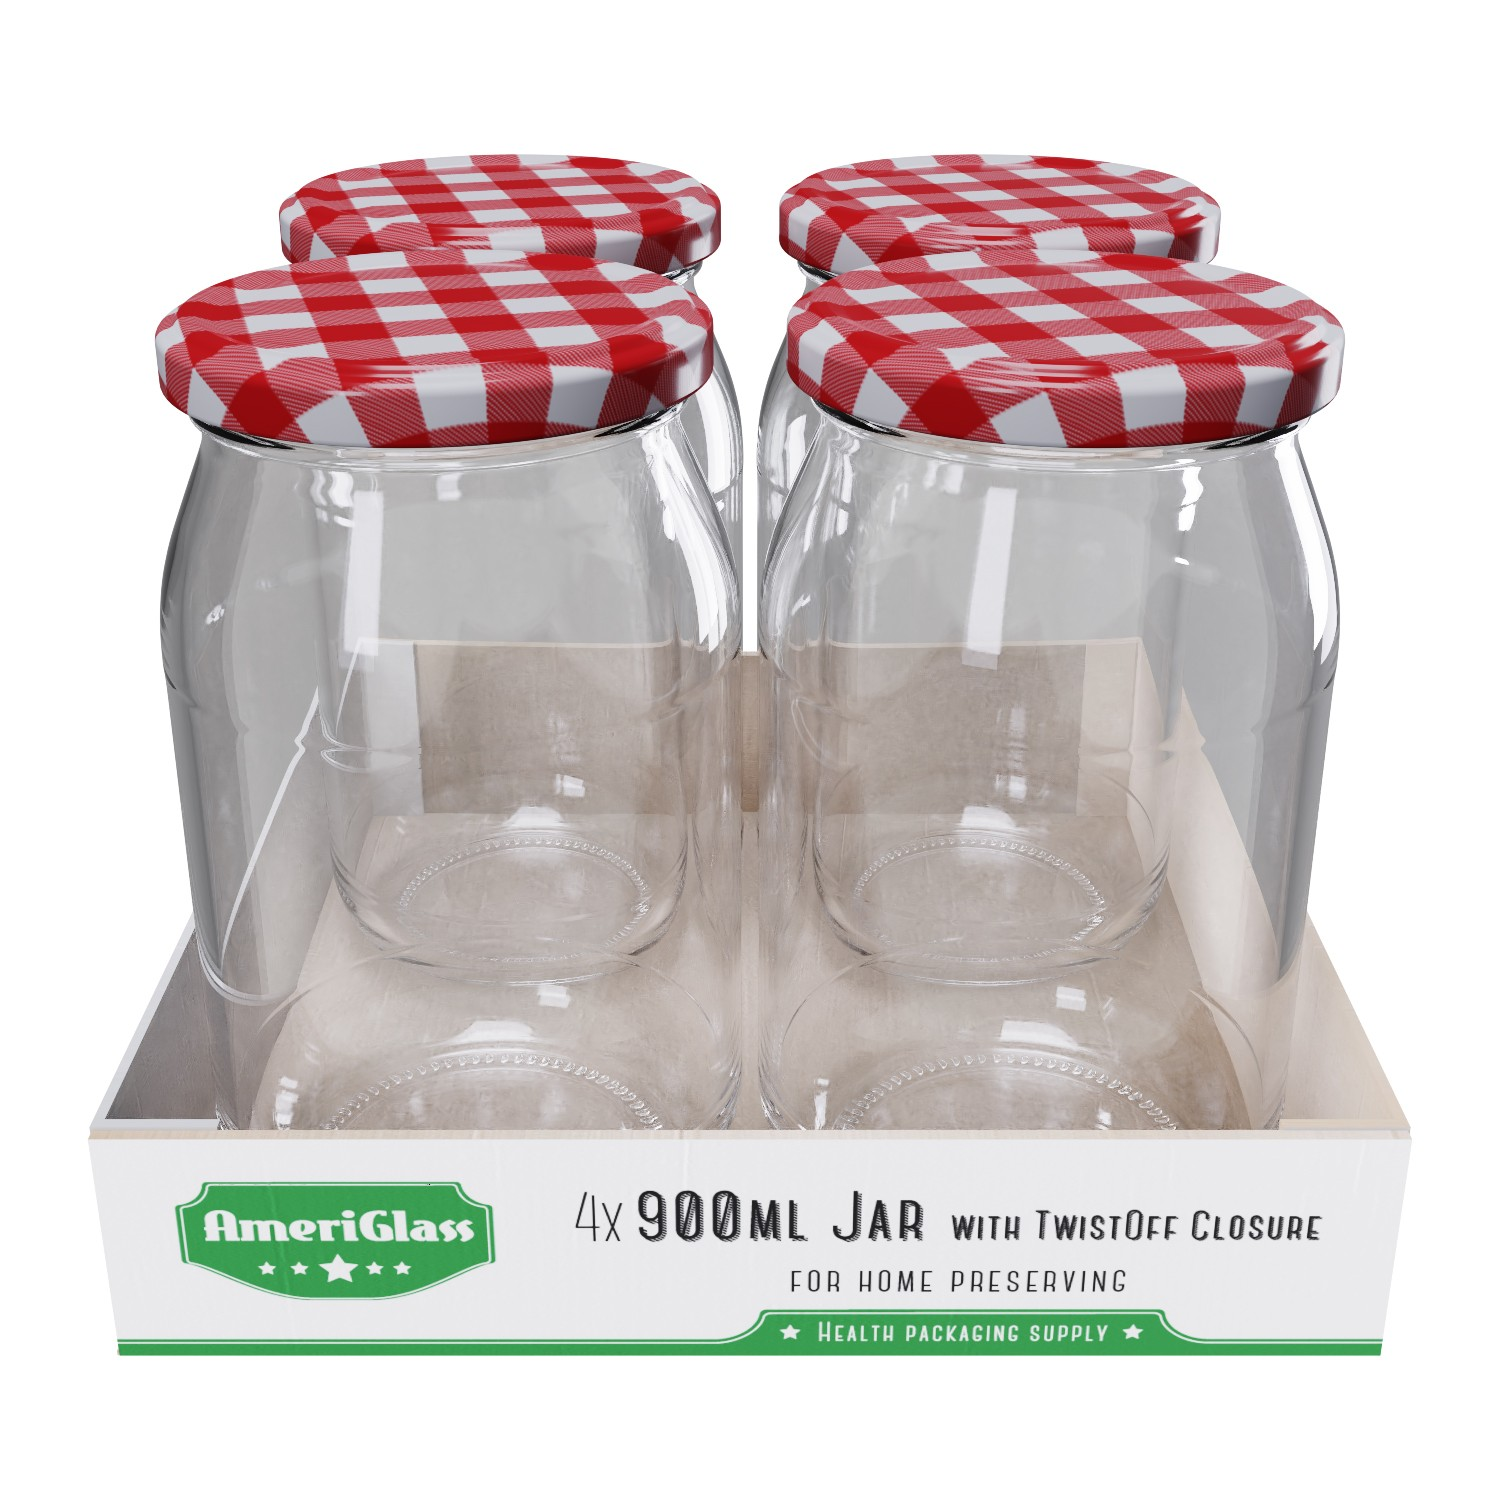 Packaging on trays - New possibility of packaging jars and bottles